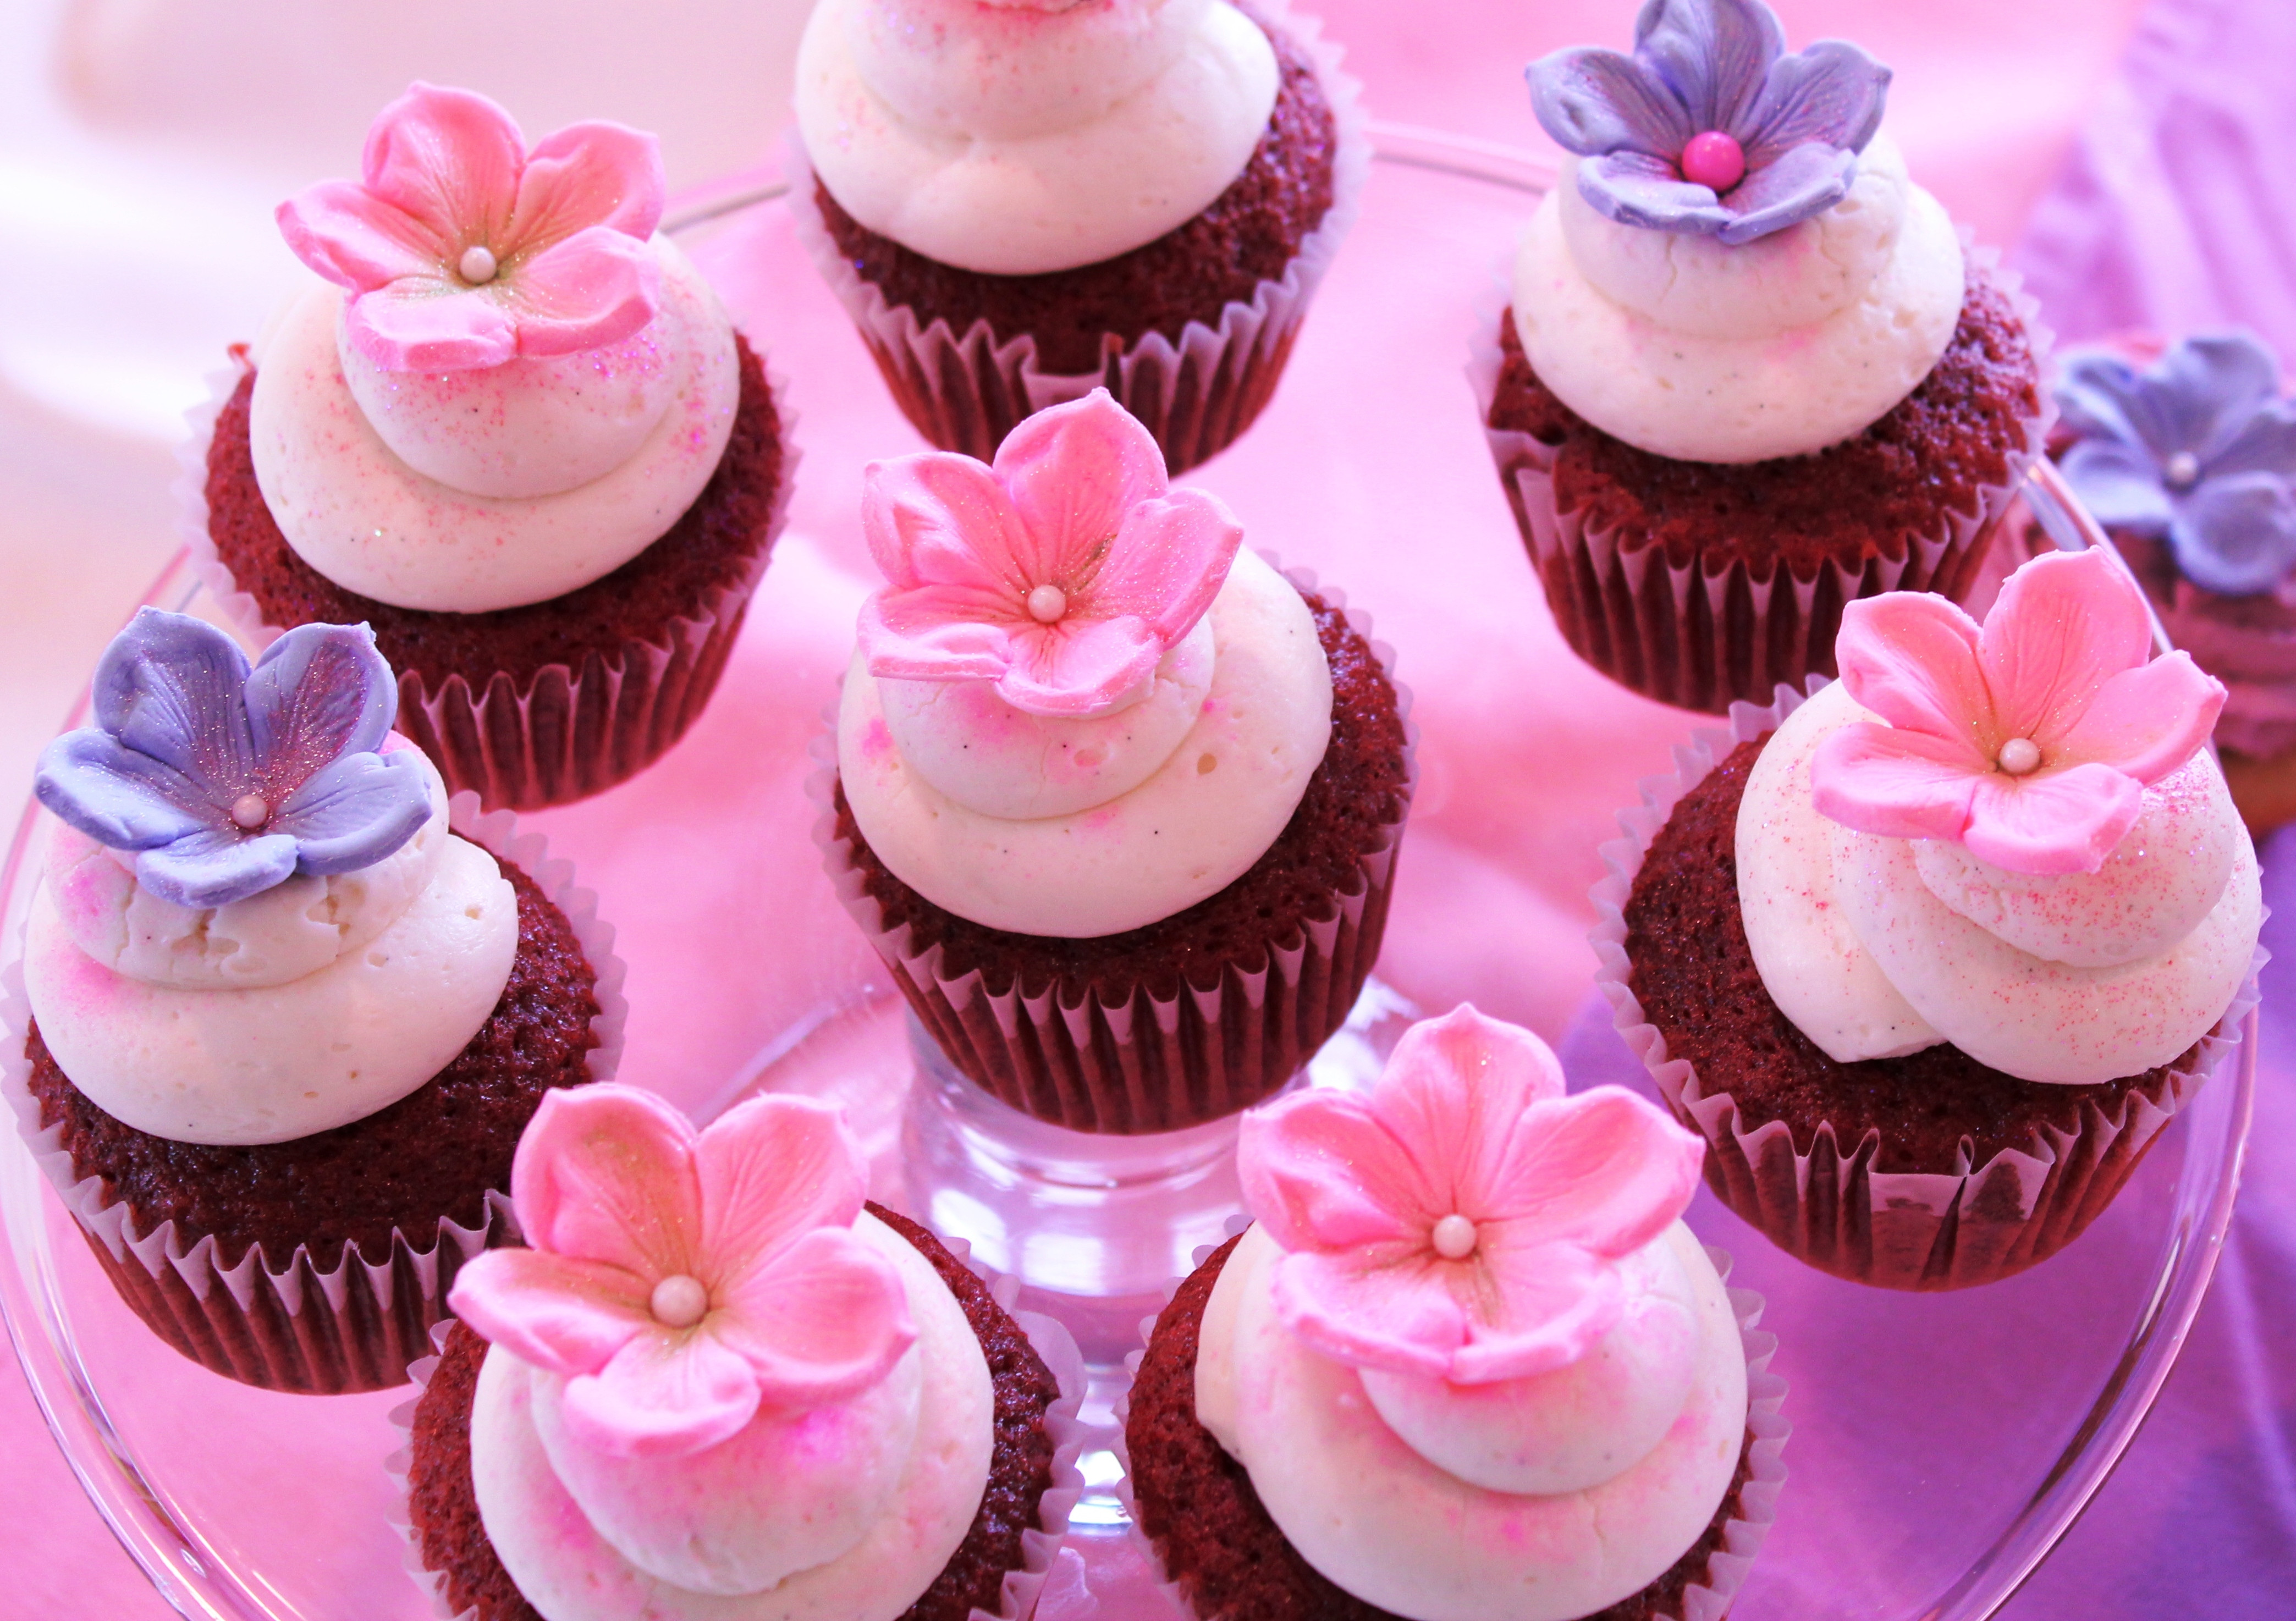 Baby Shower Cupcakes  Baby Shower Cupcakes – There Goes the Cupcake…